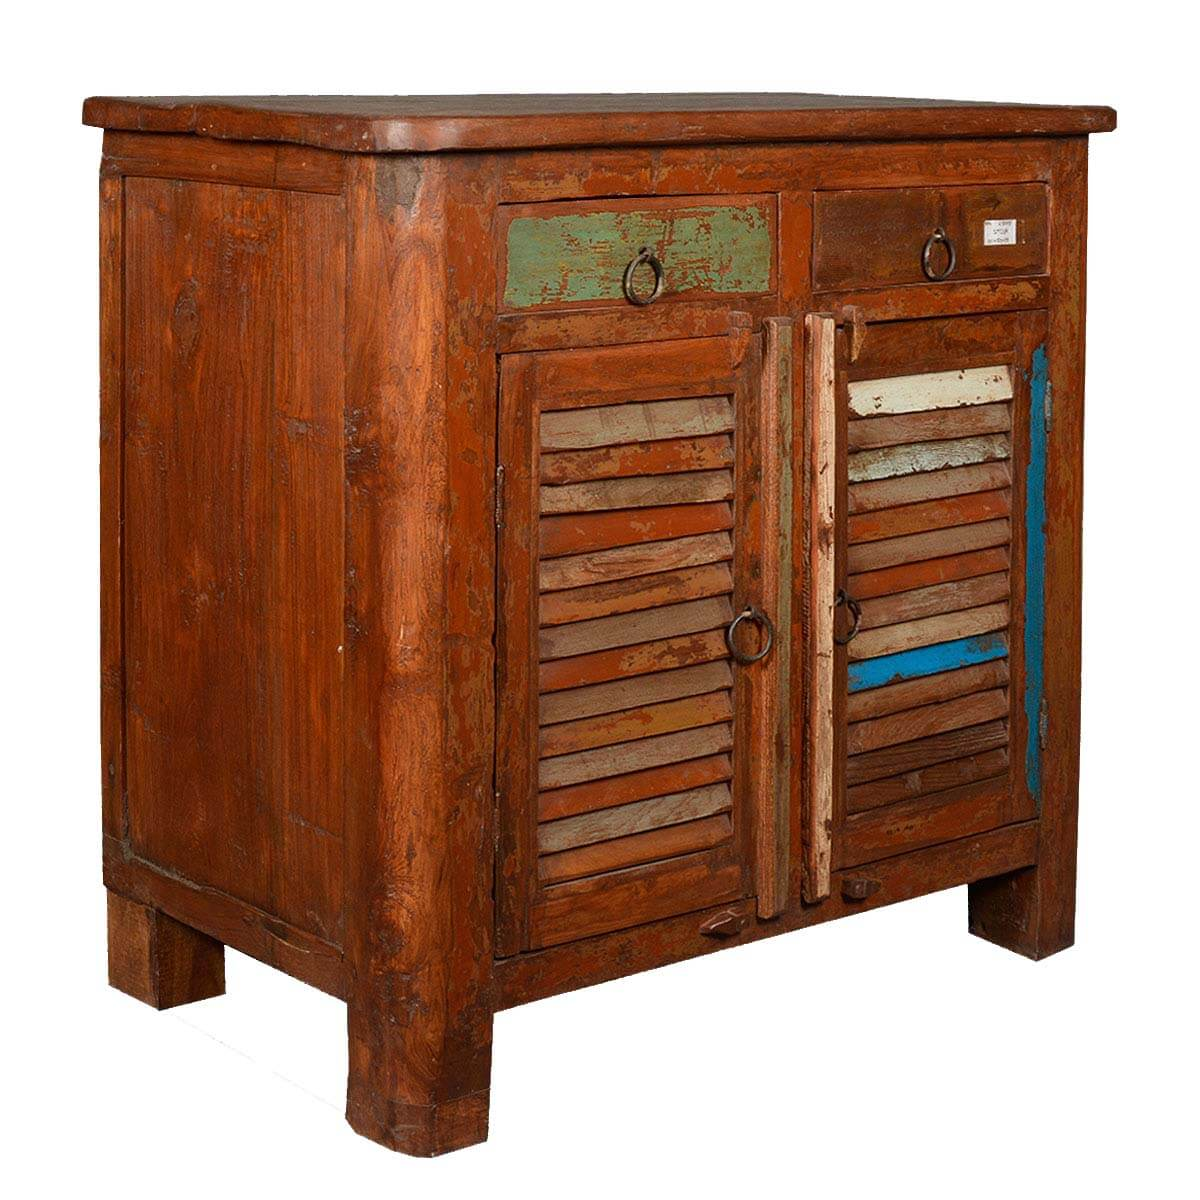 Appalachian rustic storage utility cabinet reclaimed wood for Wood cabinets